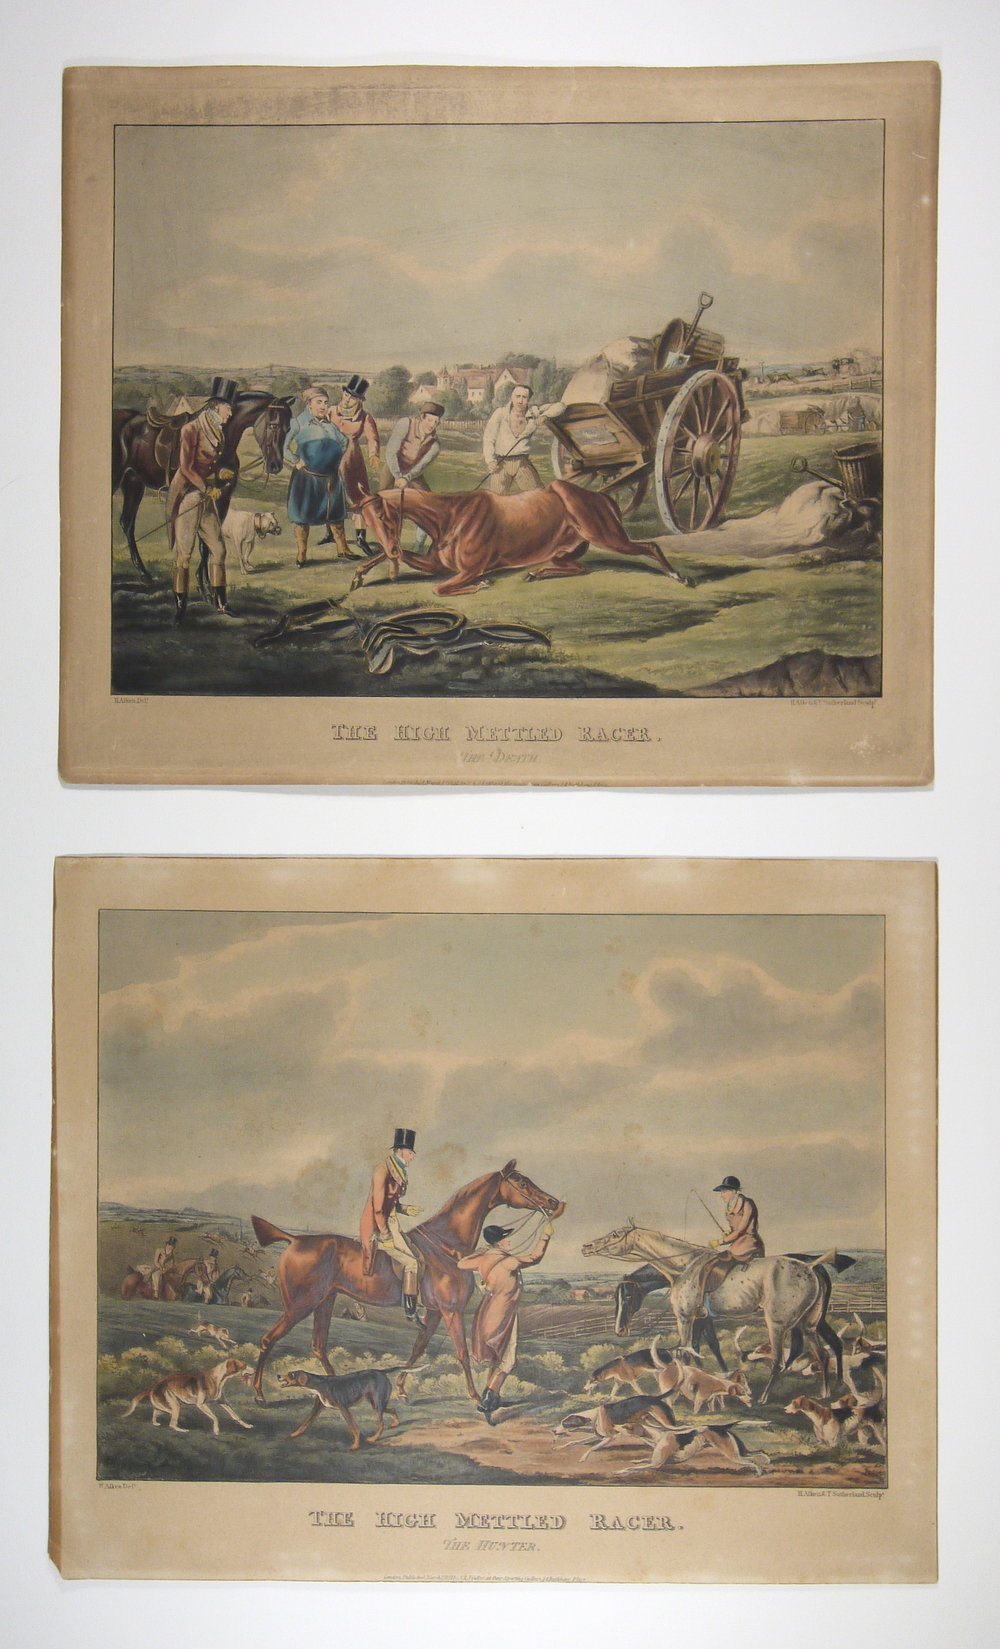 After conservation, the two lithographs match in paper tone.